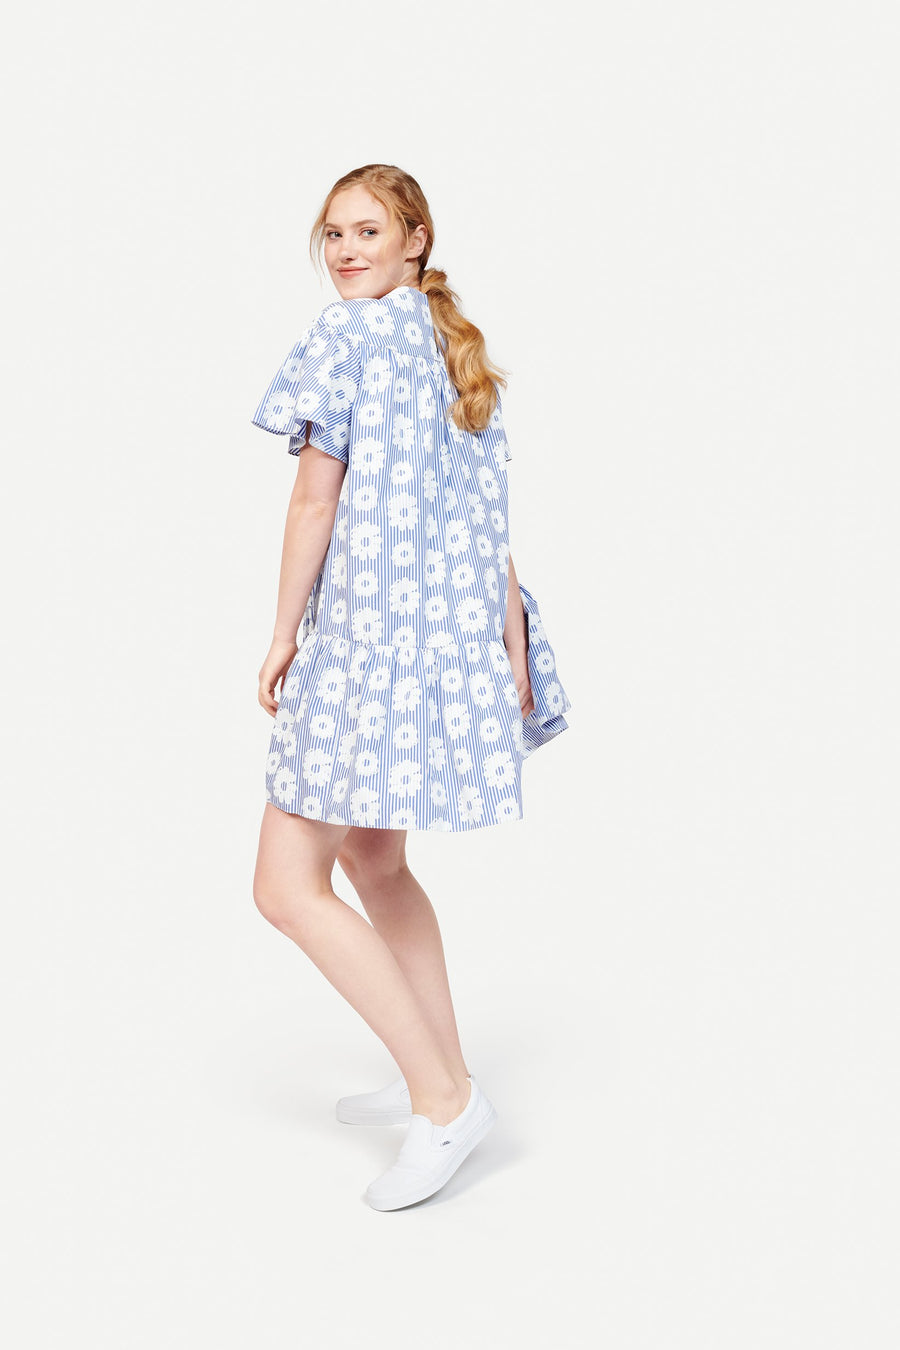 Carly Dress in Daisy on Stripe Blue/White